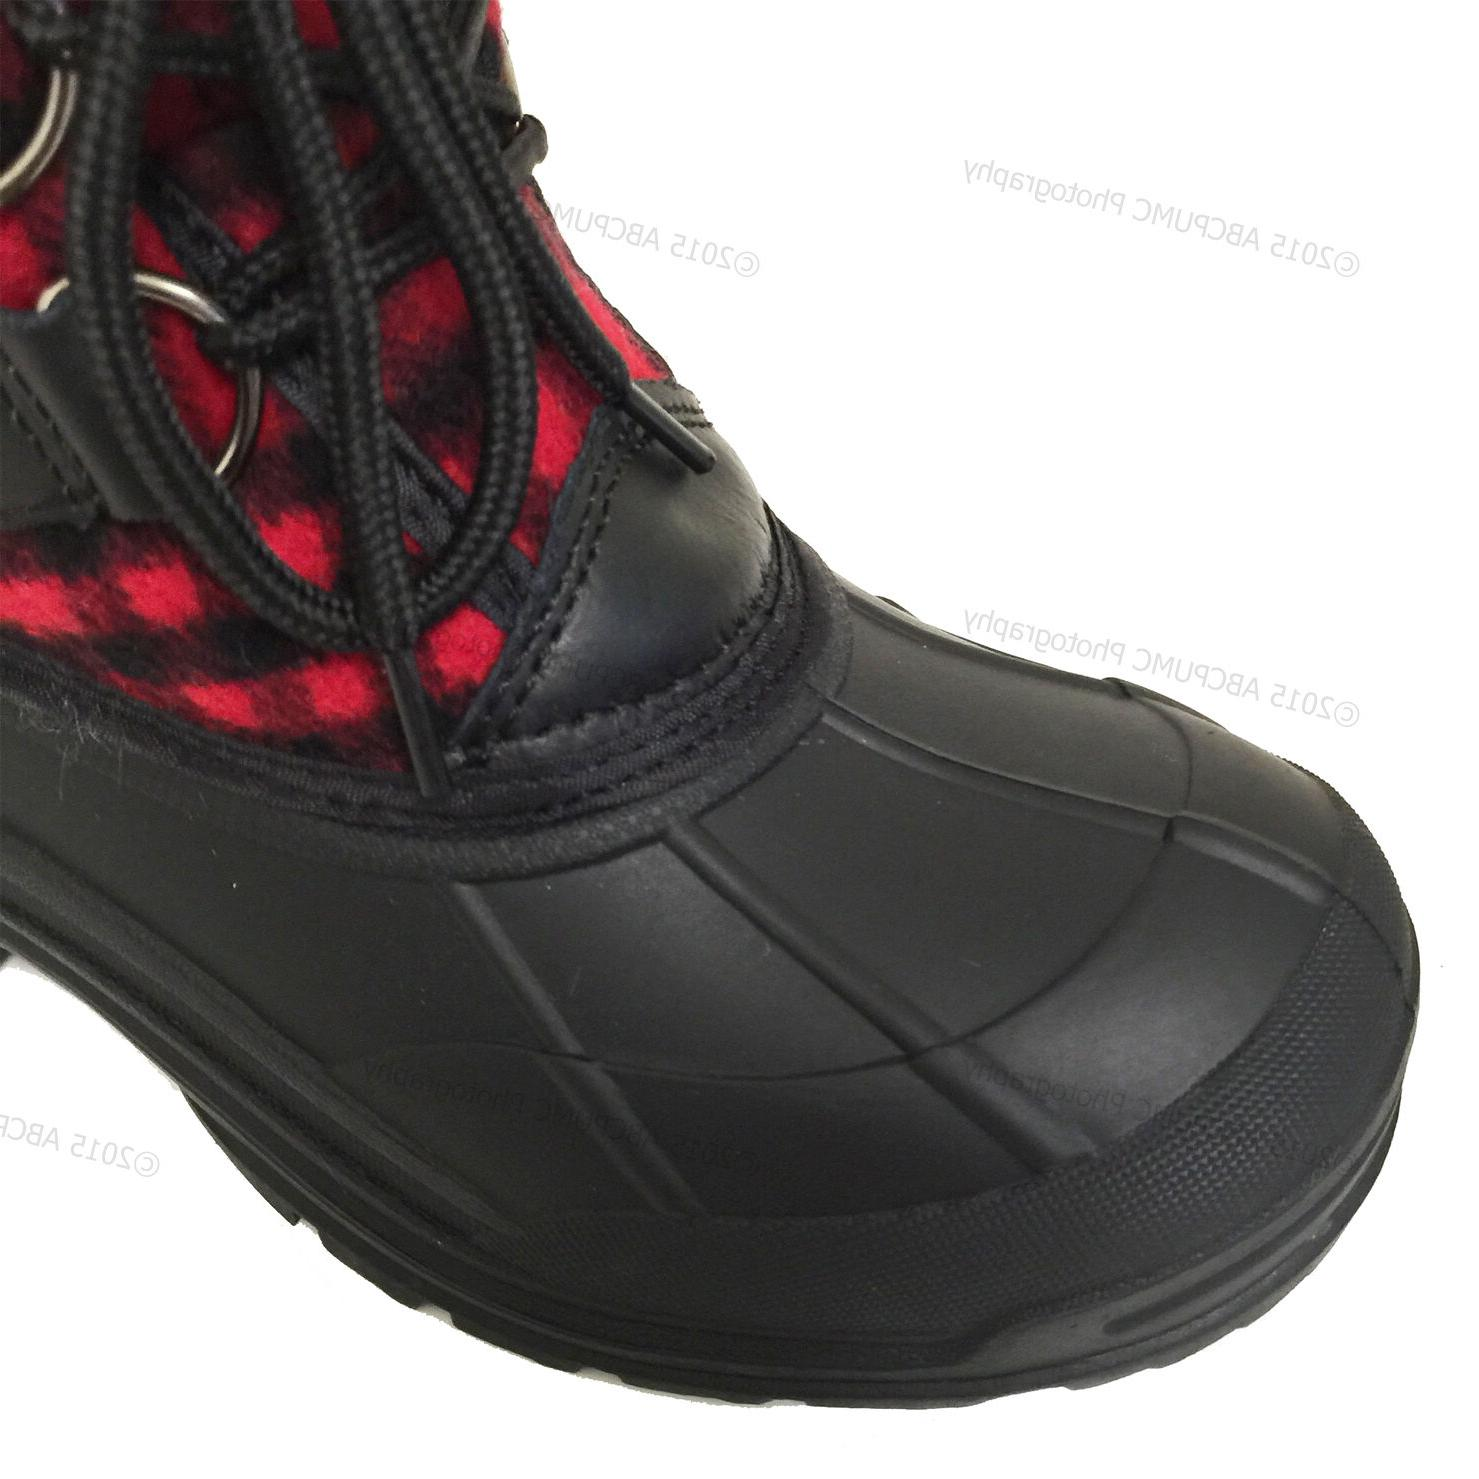 New Women's Winter Boots Flannel Warm Insulated